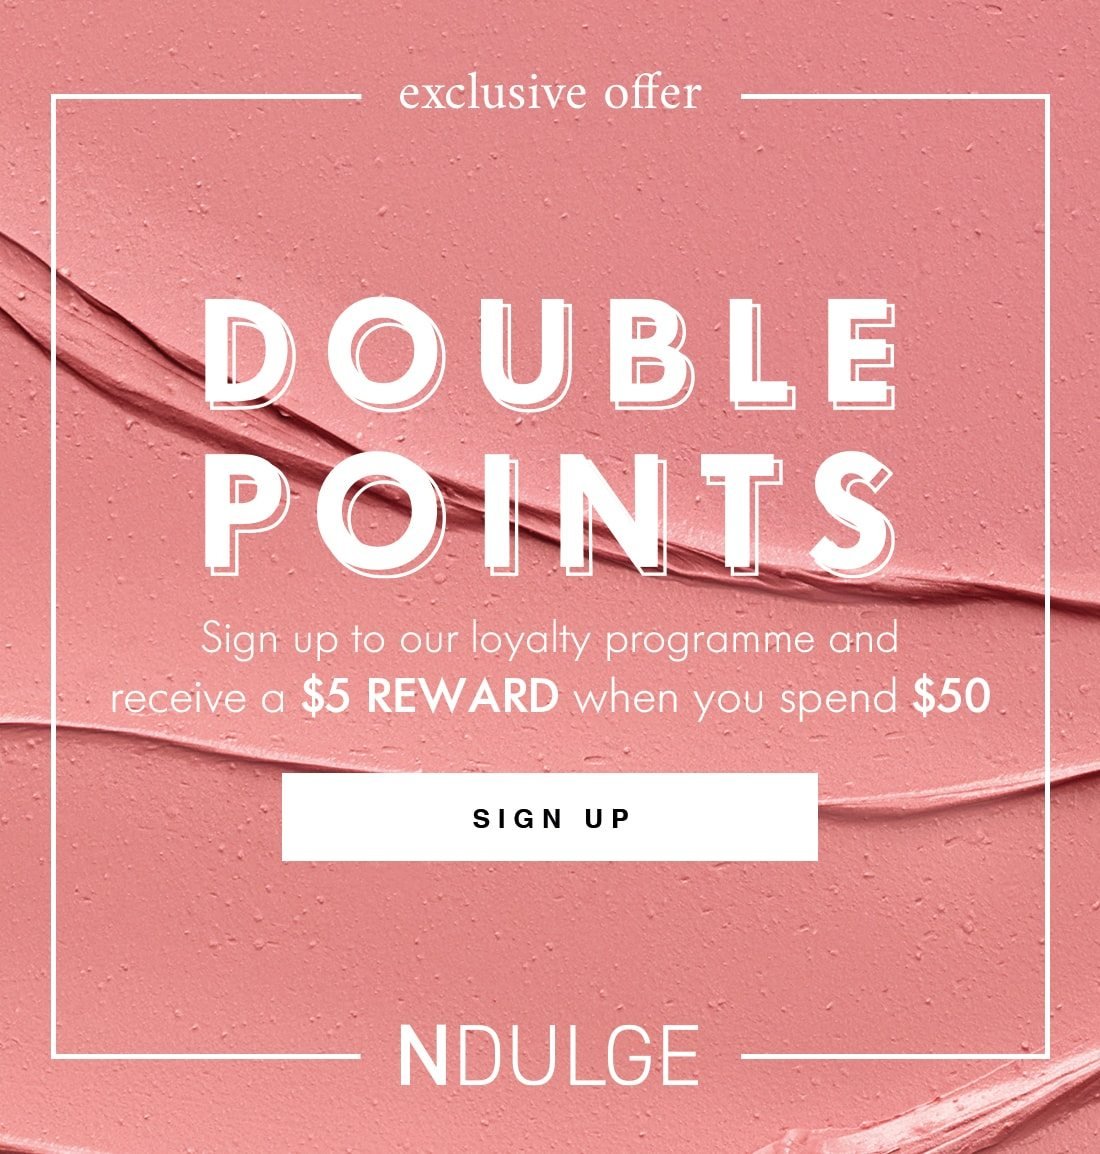 exclusive offer DOUBLE POINTS Sign up to our loyalty programme and receive a $5 REWARD when you spend $50 SIGN UP NDULGE